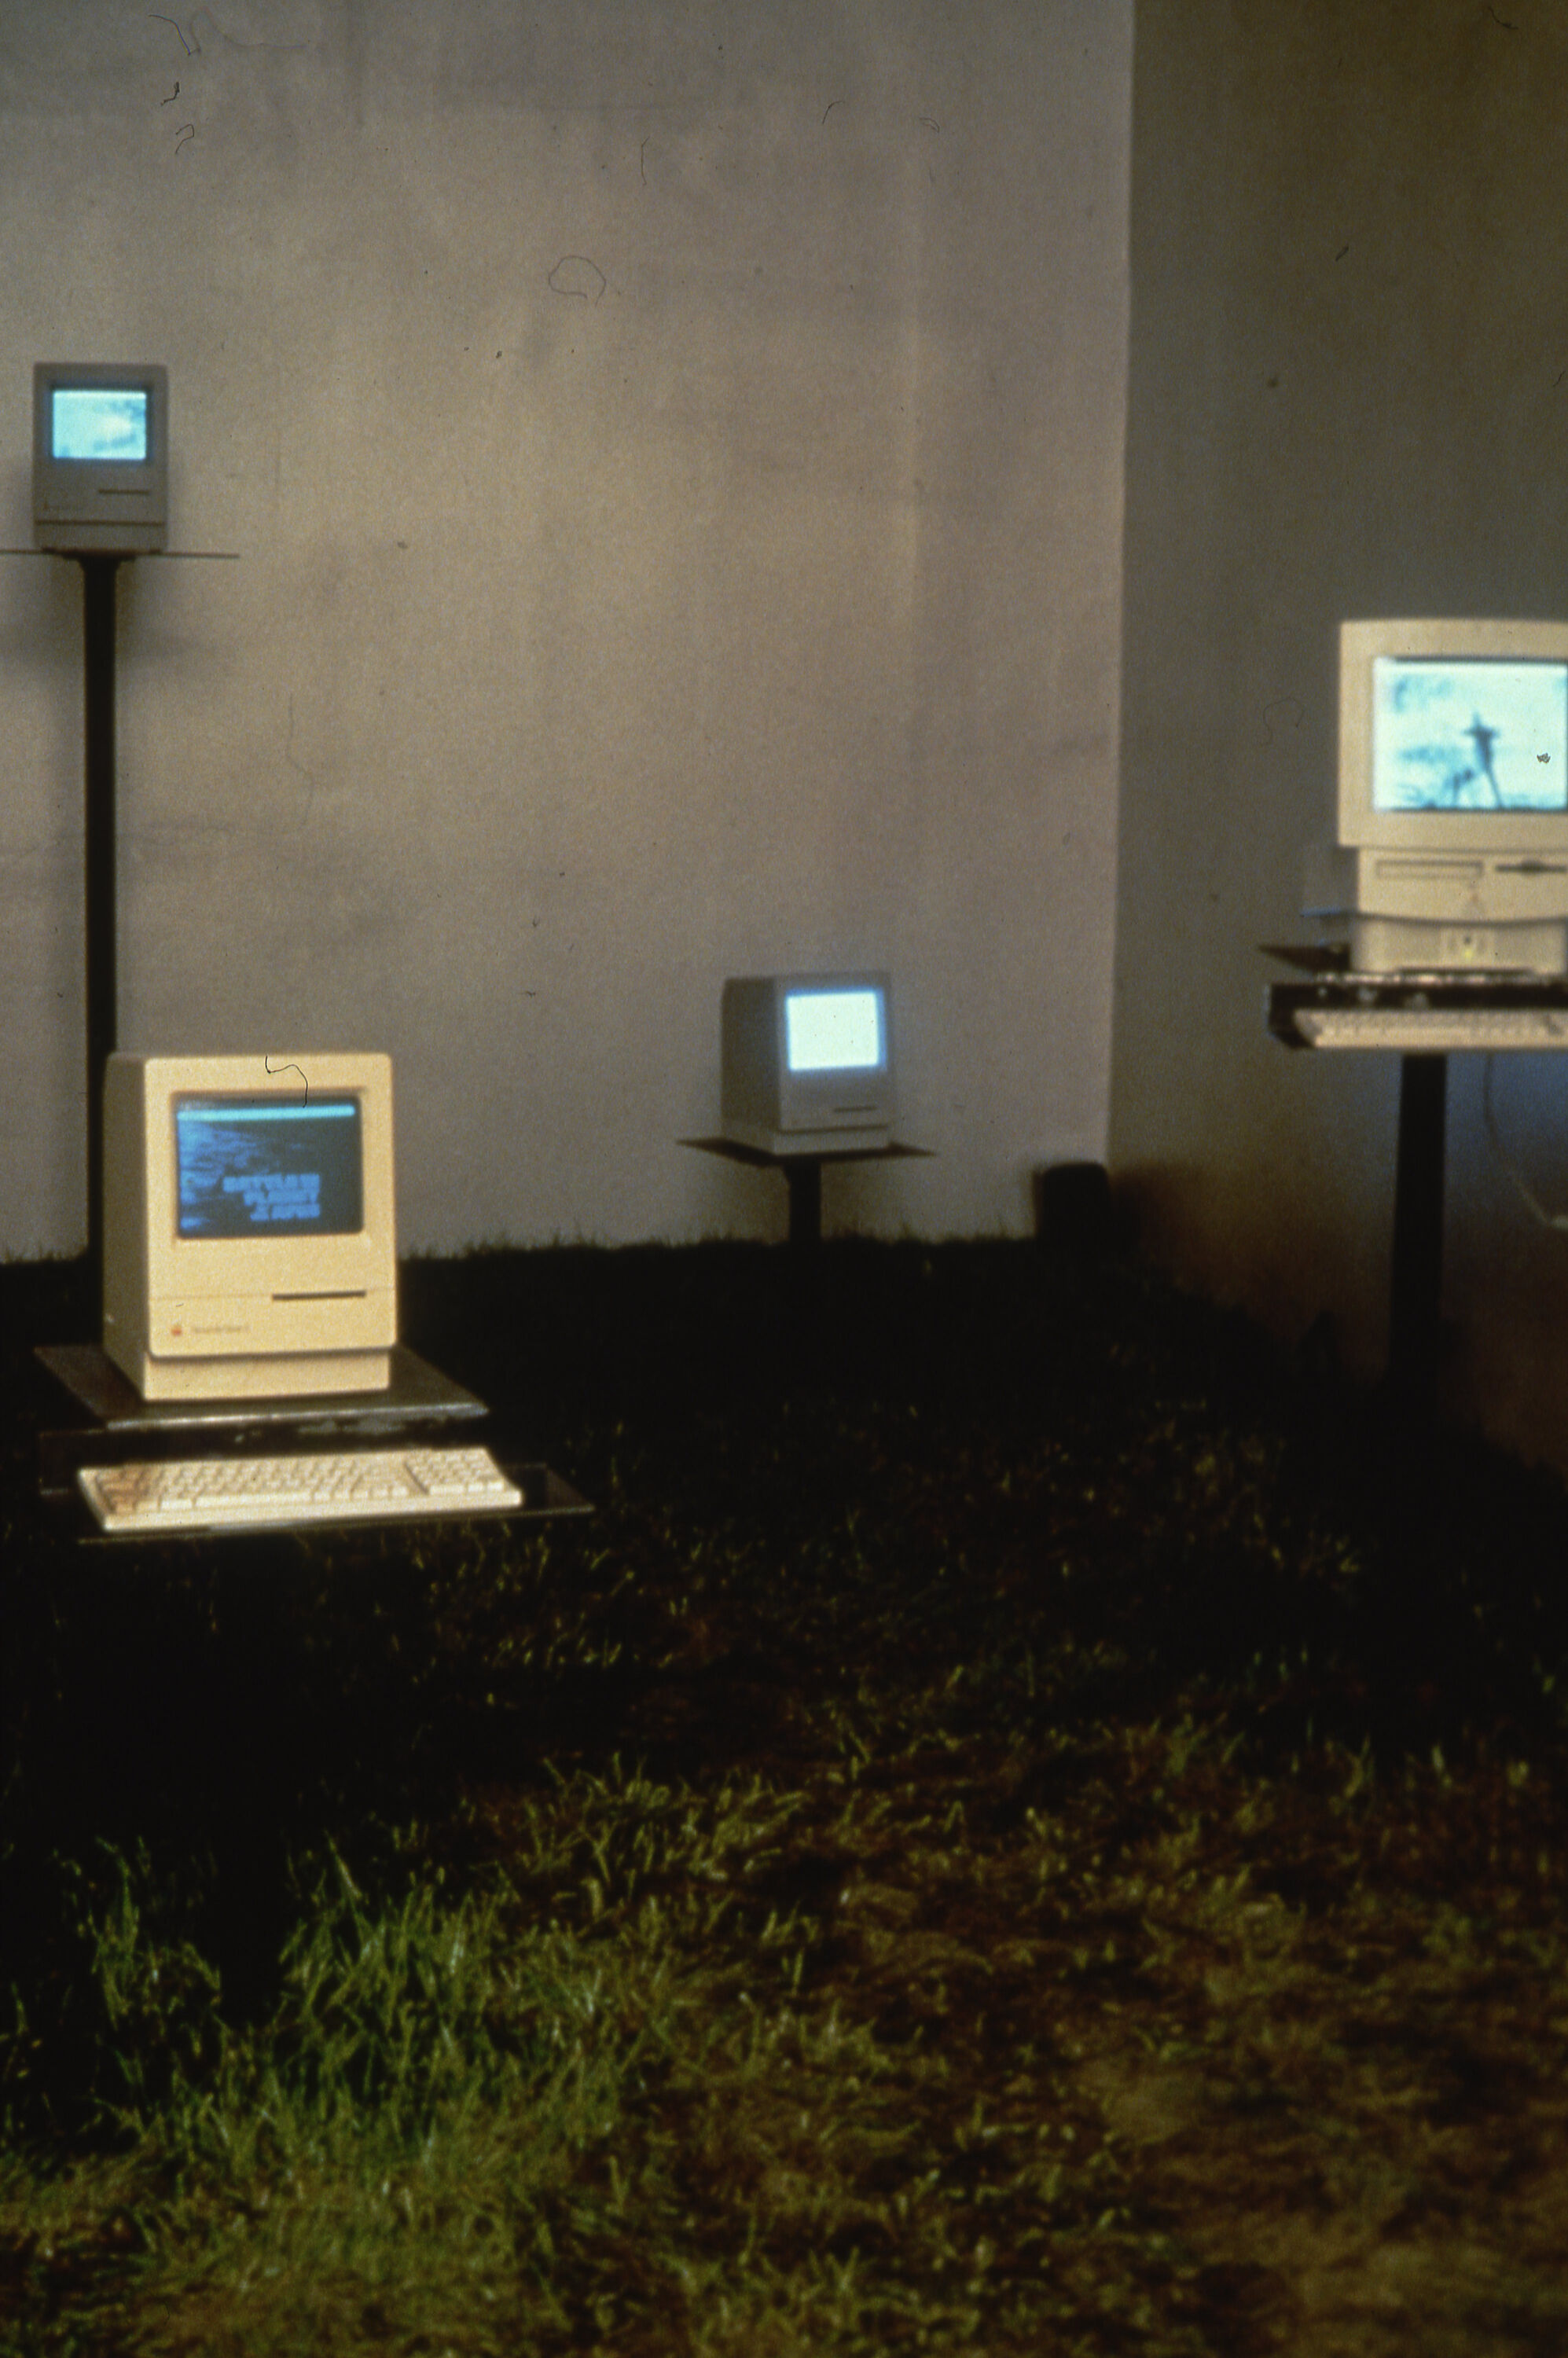 A gallery with grass on the ground and computers displayed on pedestals.